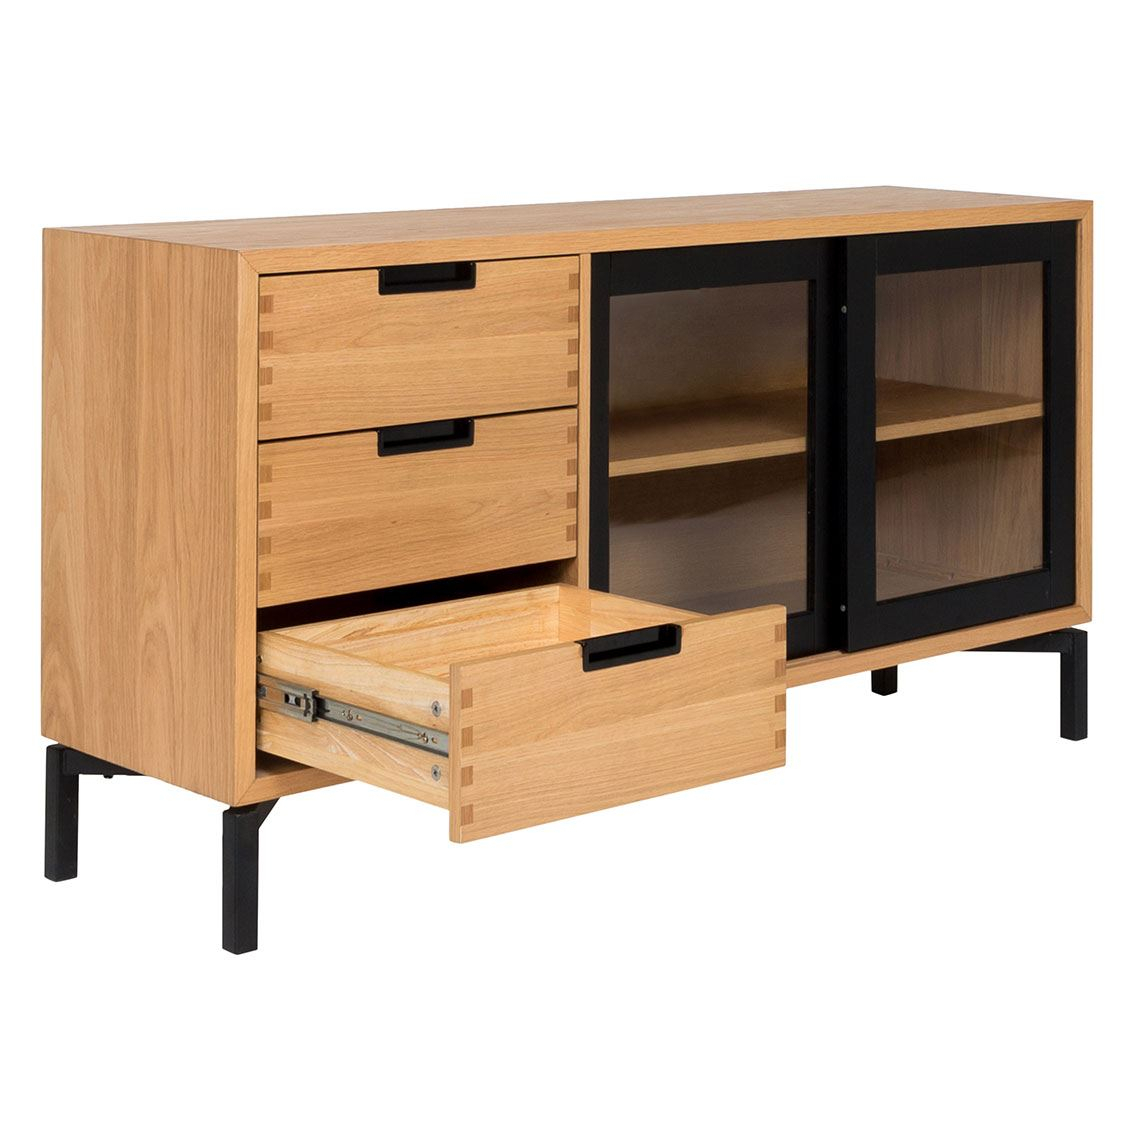 Atelier 2 Door 3 Drawer Buffet, Black & Oak With Regard To 3 Drawer Black Storage Buffets (View 13 of 30)